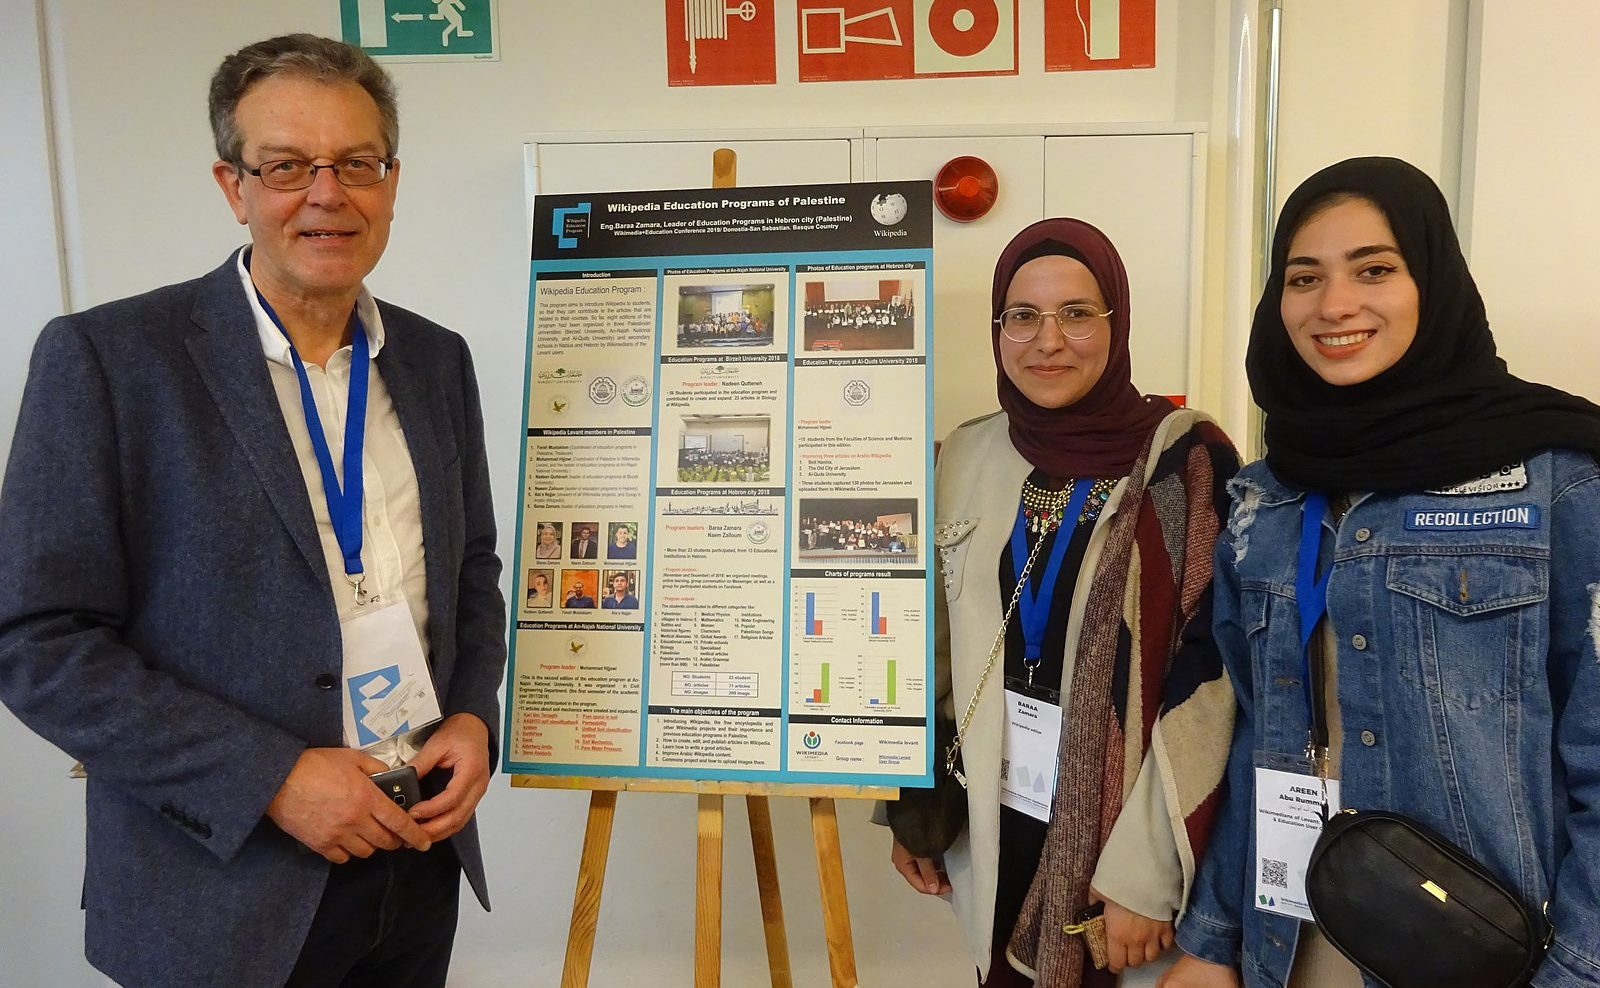 Wikimedians from Wales, Palestine and Jordan at EduWiki Education Conference